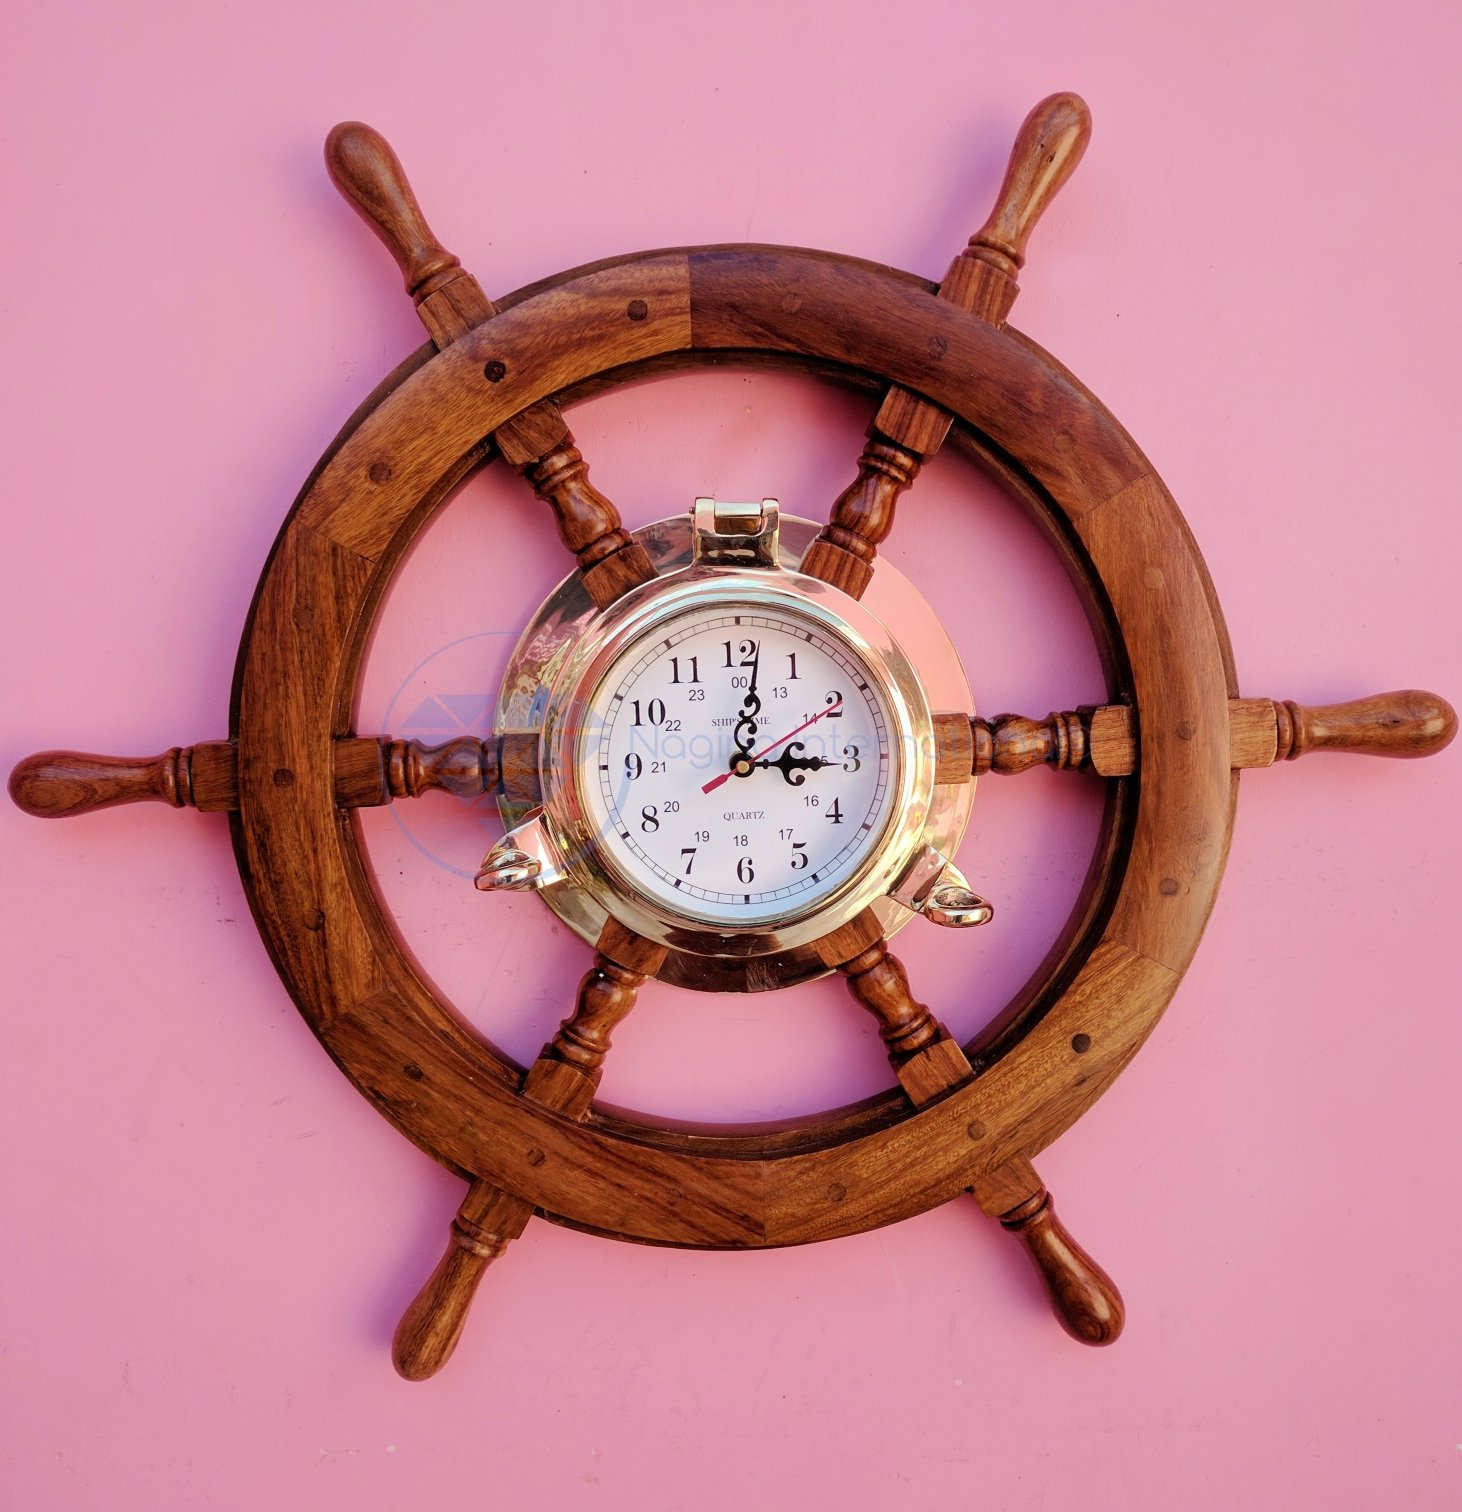 24'' Solid Teak Wood Crafted Premium Nautical Porthole Clock Ship Wheel | Finest Home Decor Gift | Nagina International